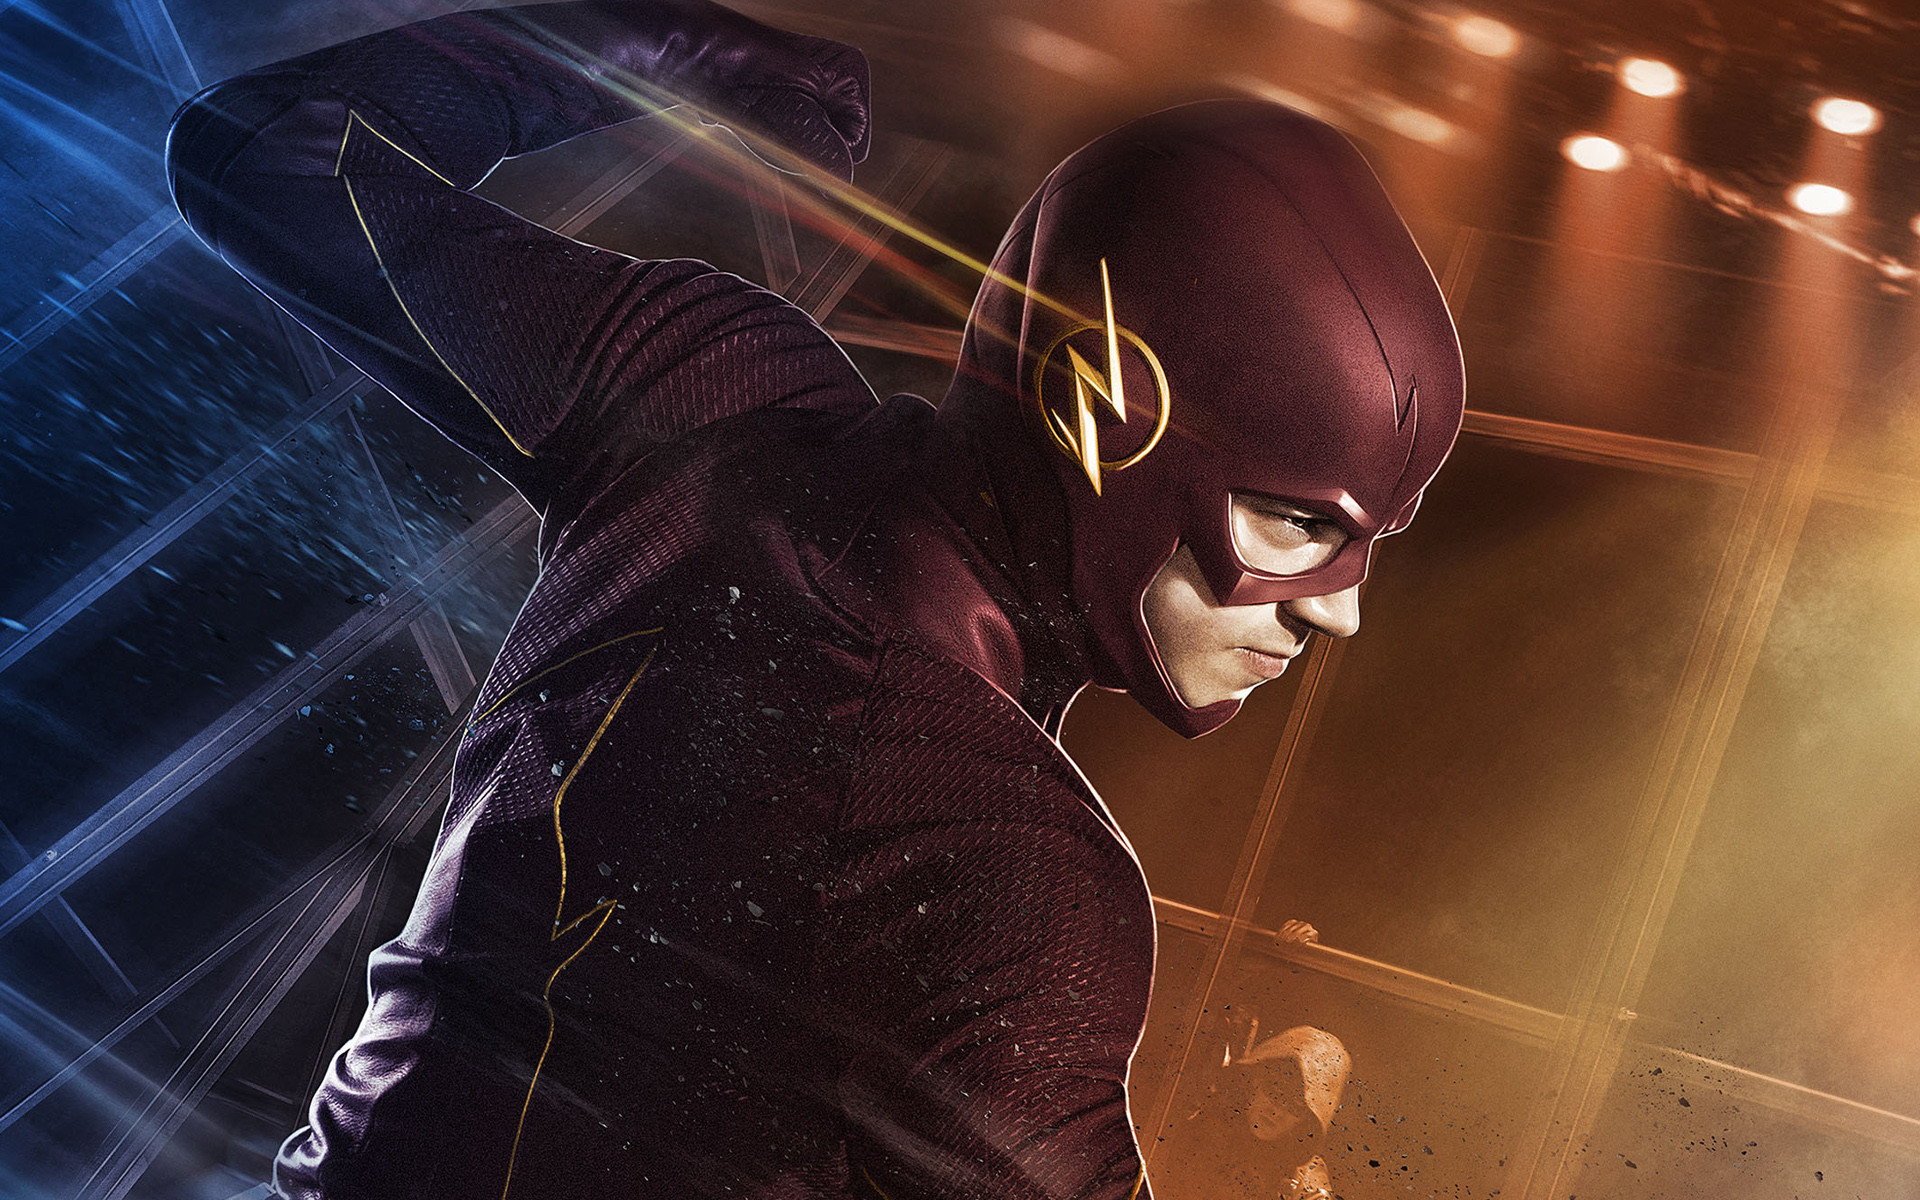 1920x1200 Grant Gustin as Barry Allen The Flash Wallpapers | HD Wallpapers